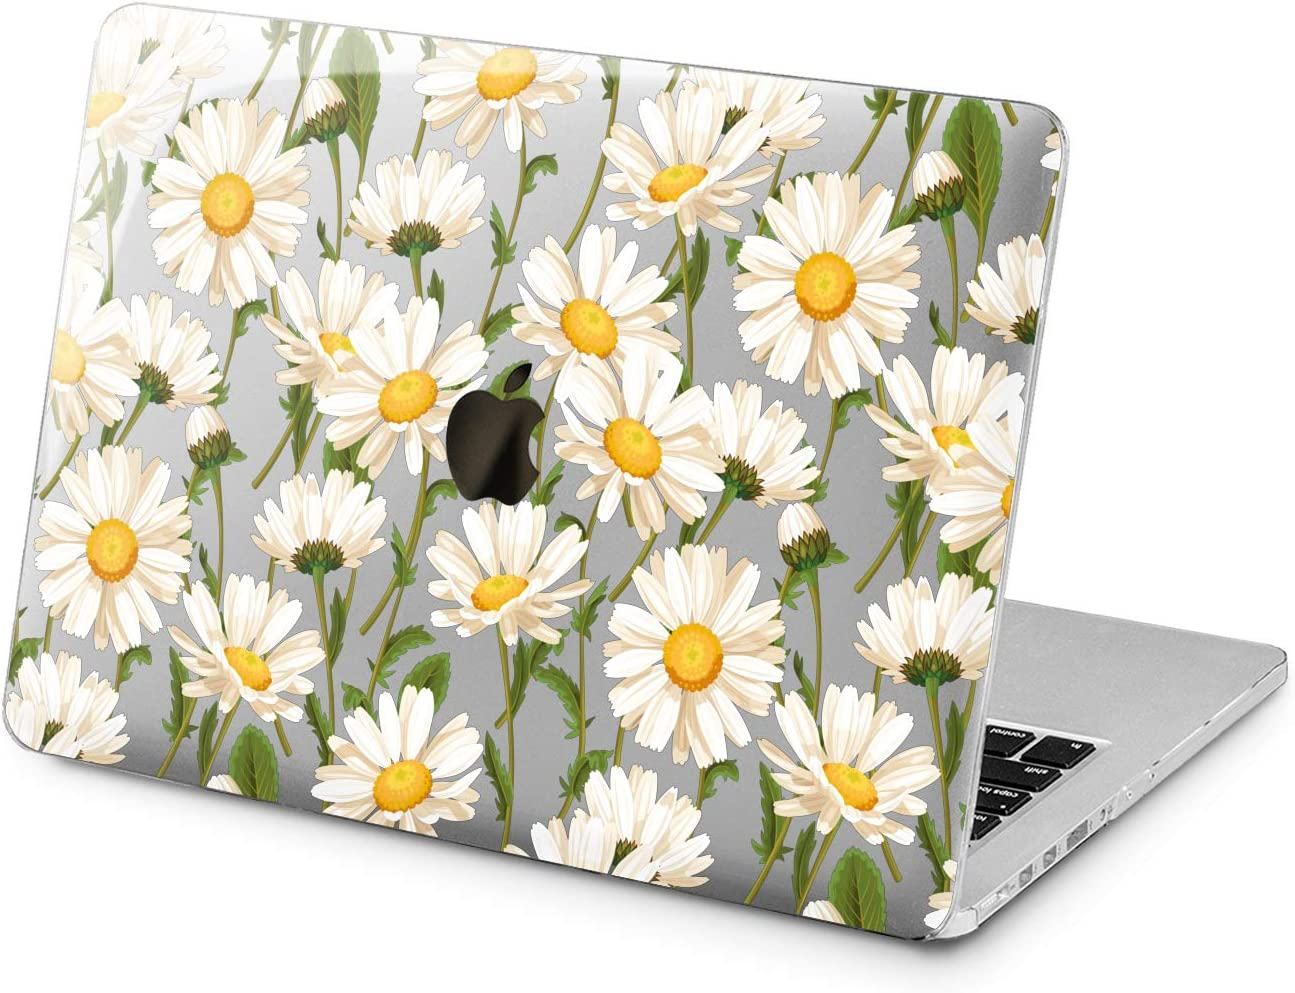 "Cavka Hard Shell Case for Apple MacBook Pro 13"" 2019 15"" 2018 Air 13"" 2020 Retina 2015 Mac 11"" Mac 12"" Daisy White Flowers Cover Laptop Design Plastic Green Protective Print Nature Floral Pattern"